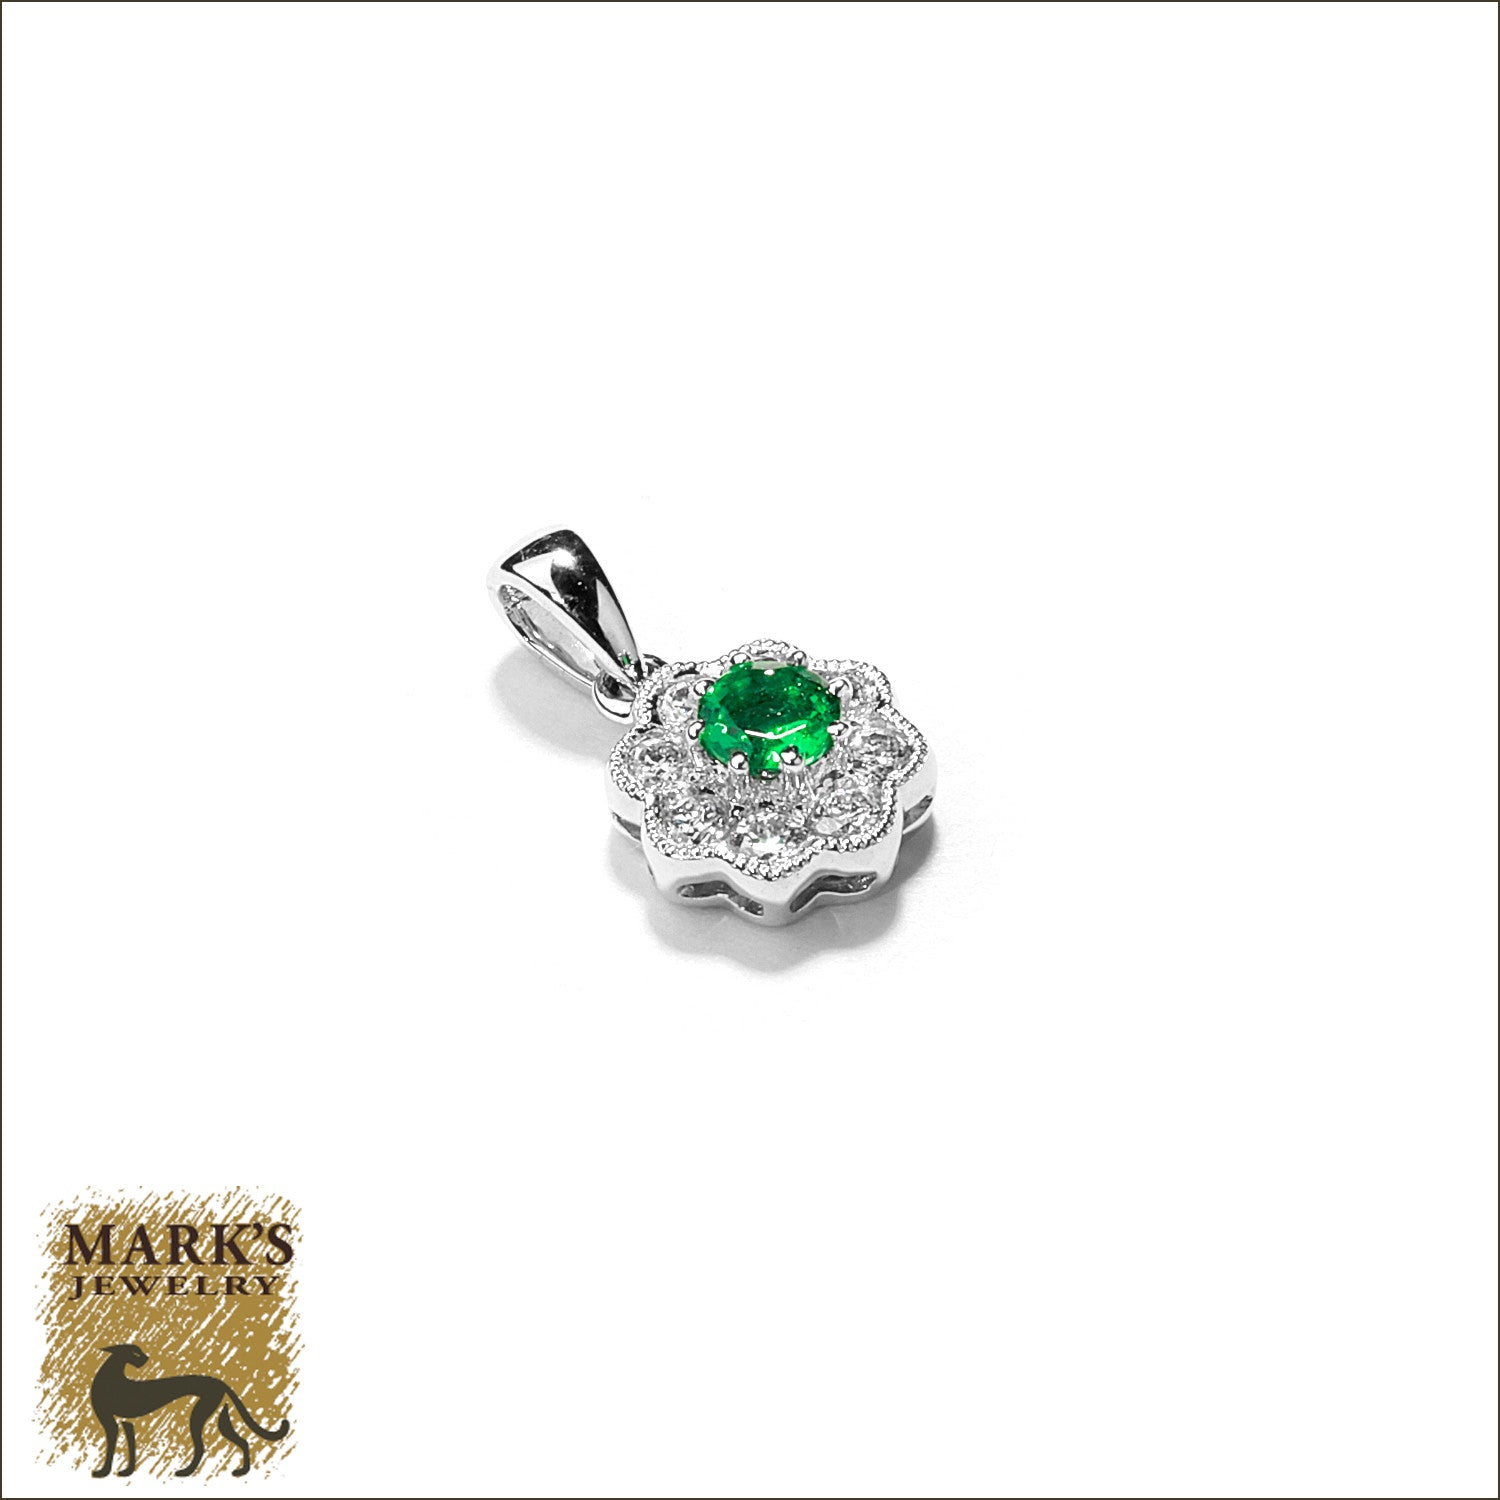 18K White Gold Round Emerald & Diamond Pendant, Marks Jewelry